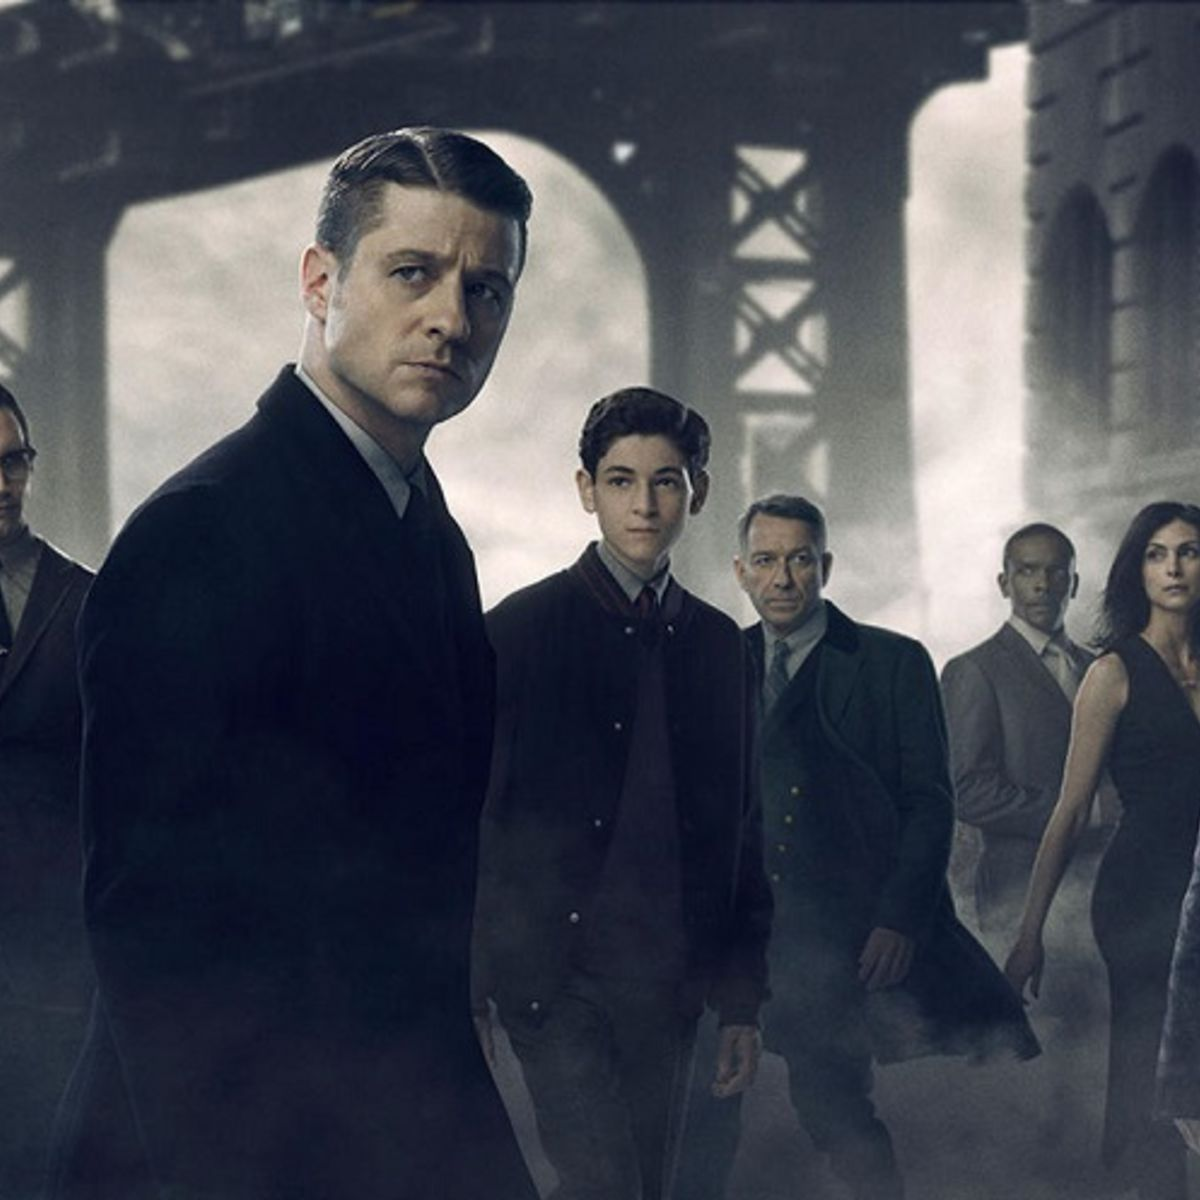 Gotham-Cast-Photo.jpg